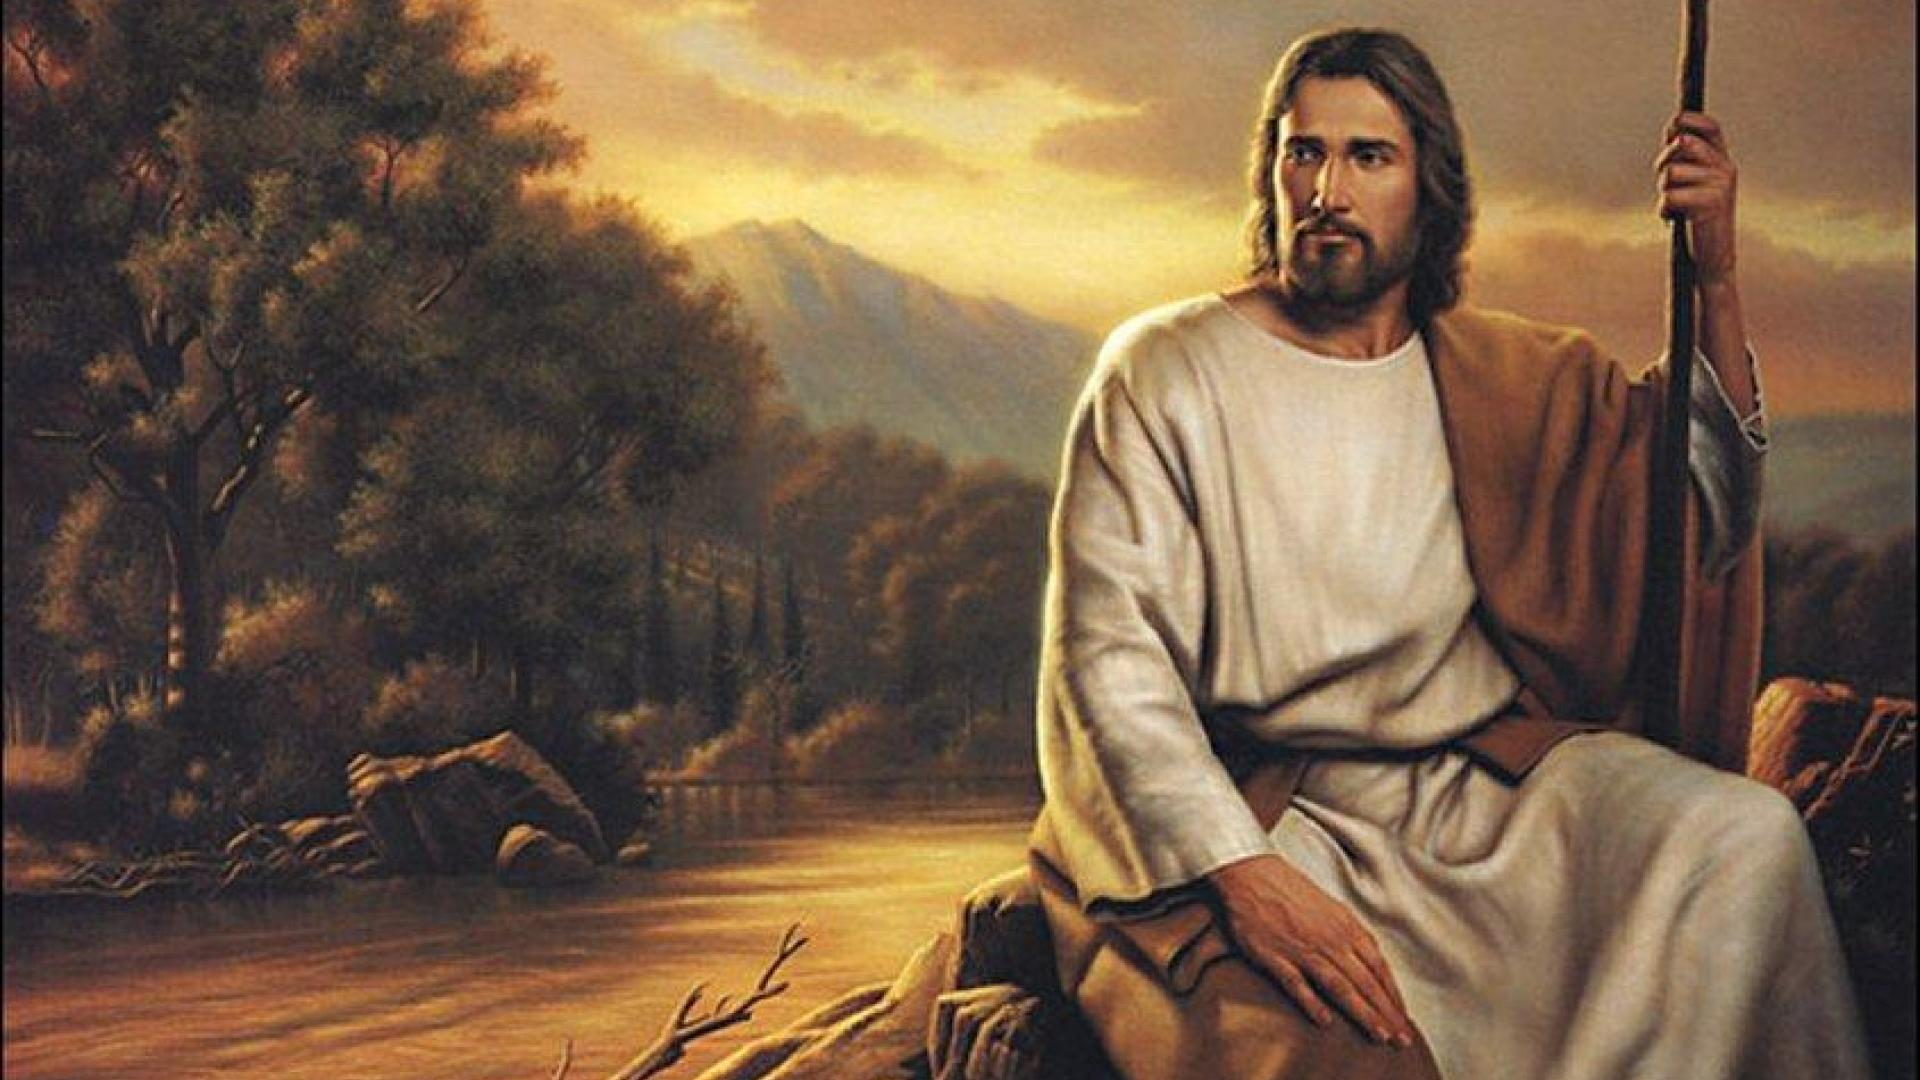 Jesus Wallpapers HD VZG4NLL   4USkY 1920x1080